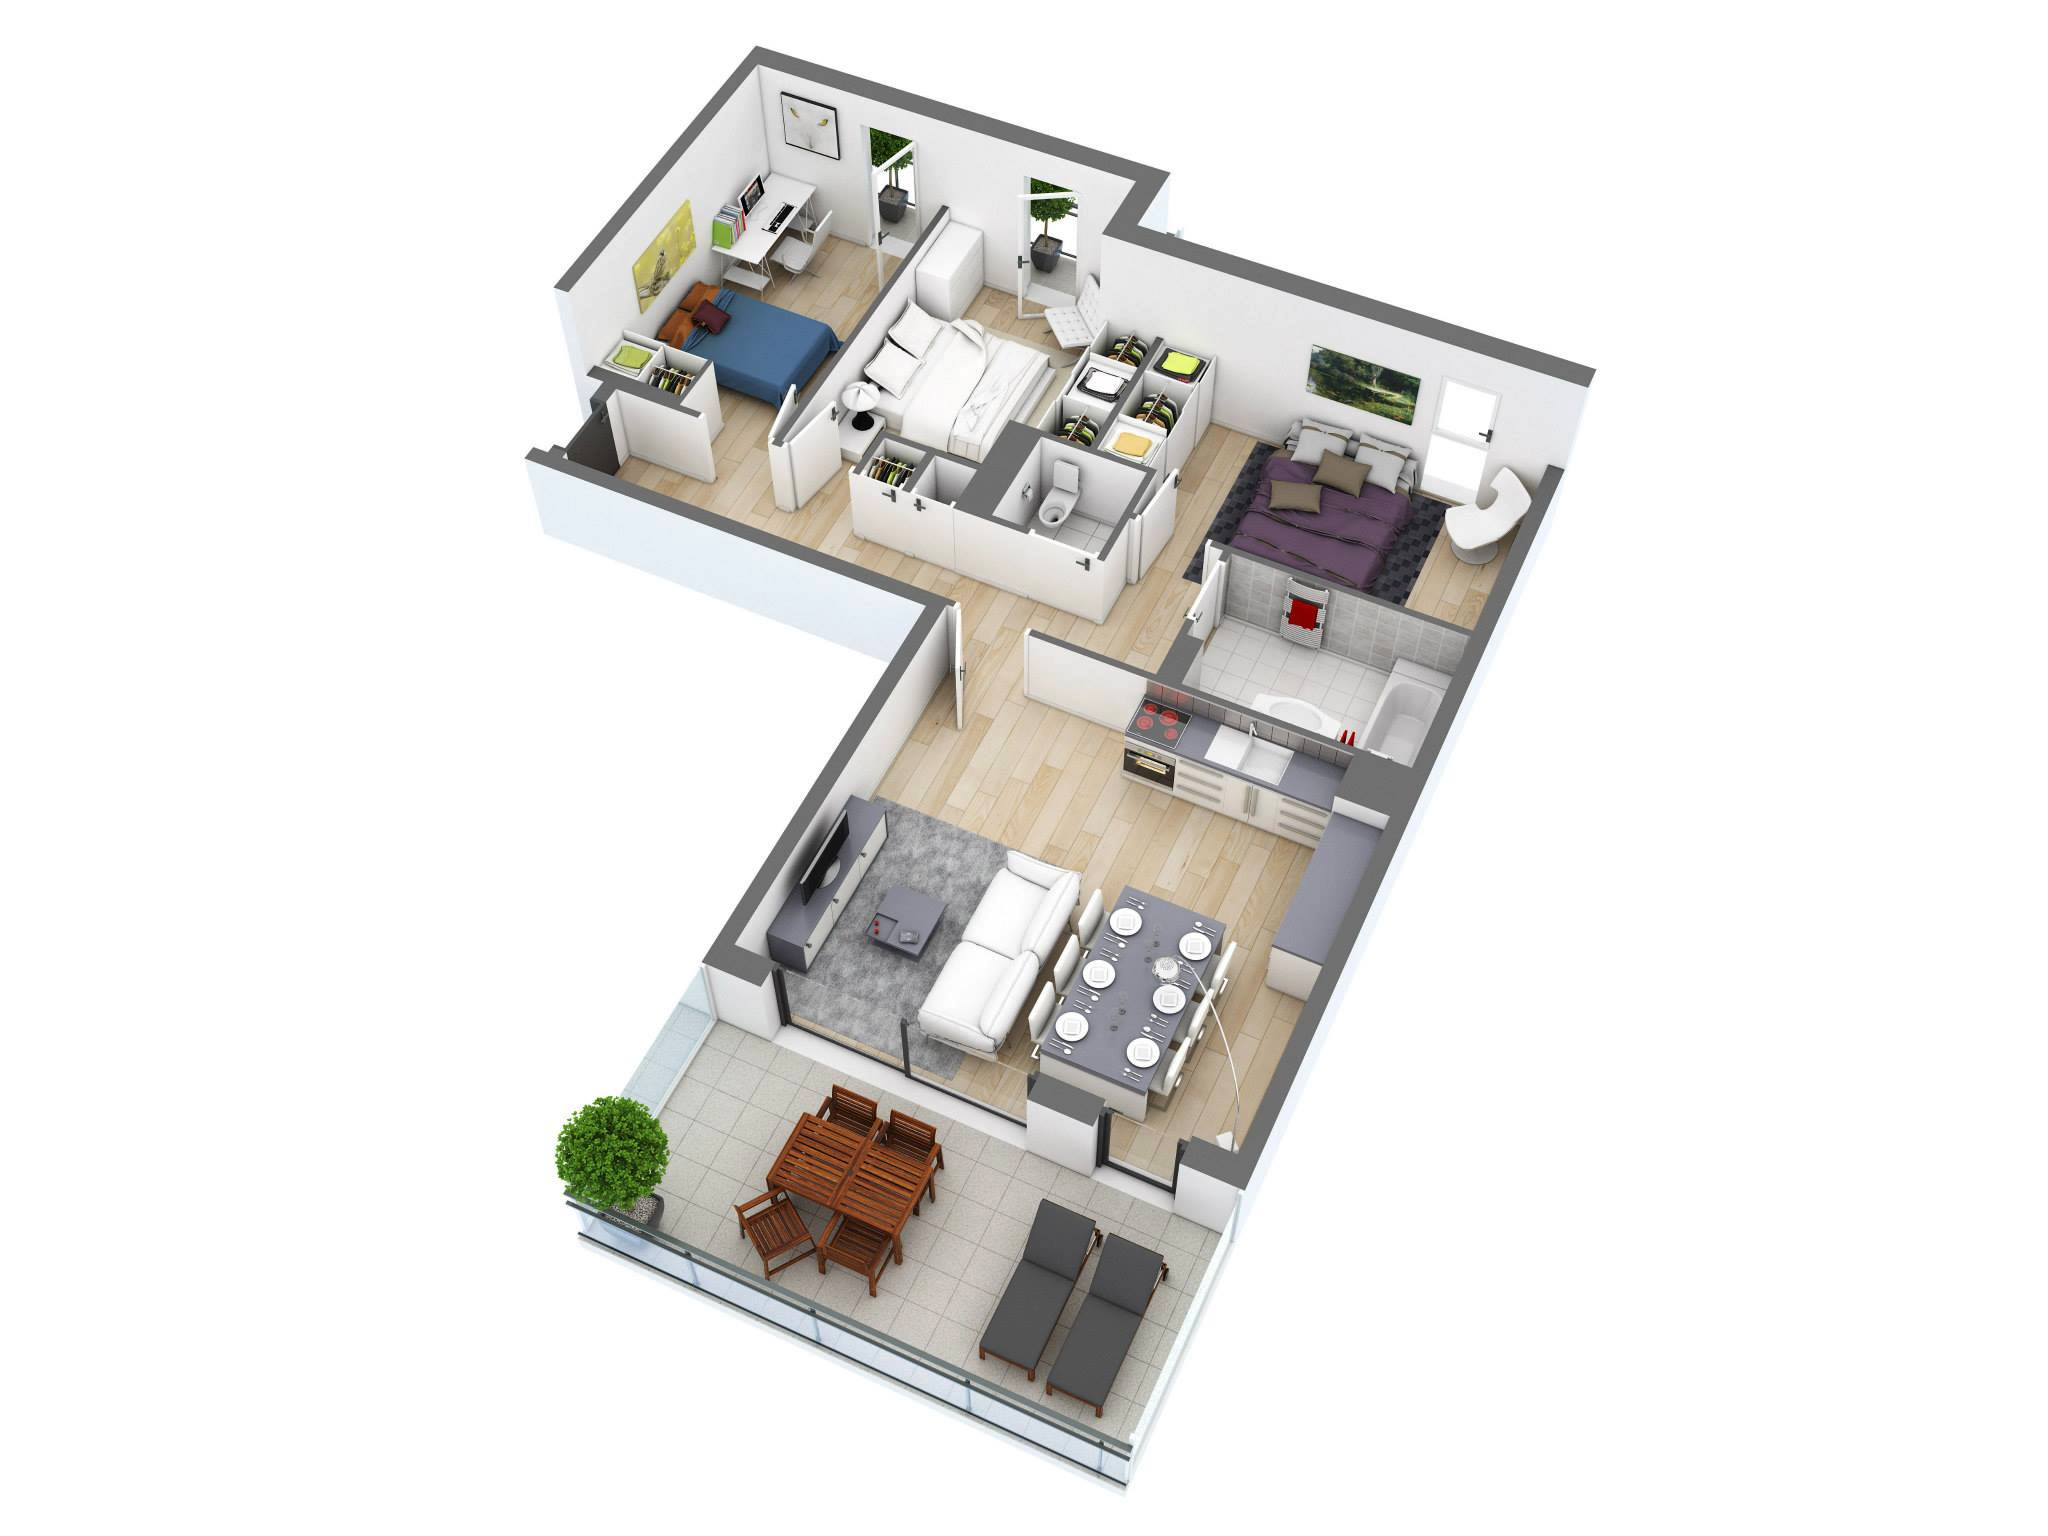 25 more 3 bedroom 3d floor plans architecture design for 3 bedroom house layout ideas